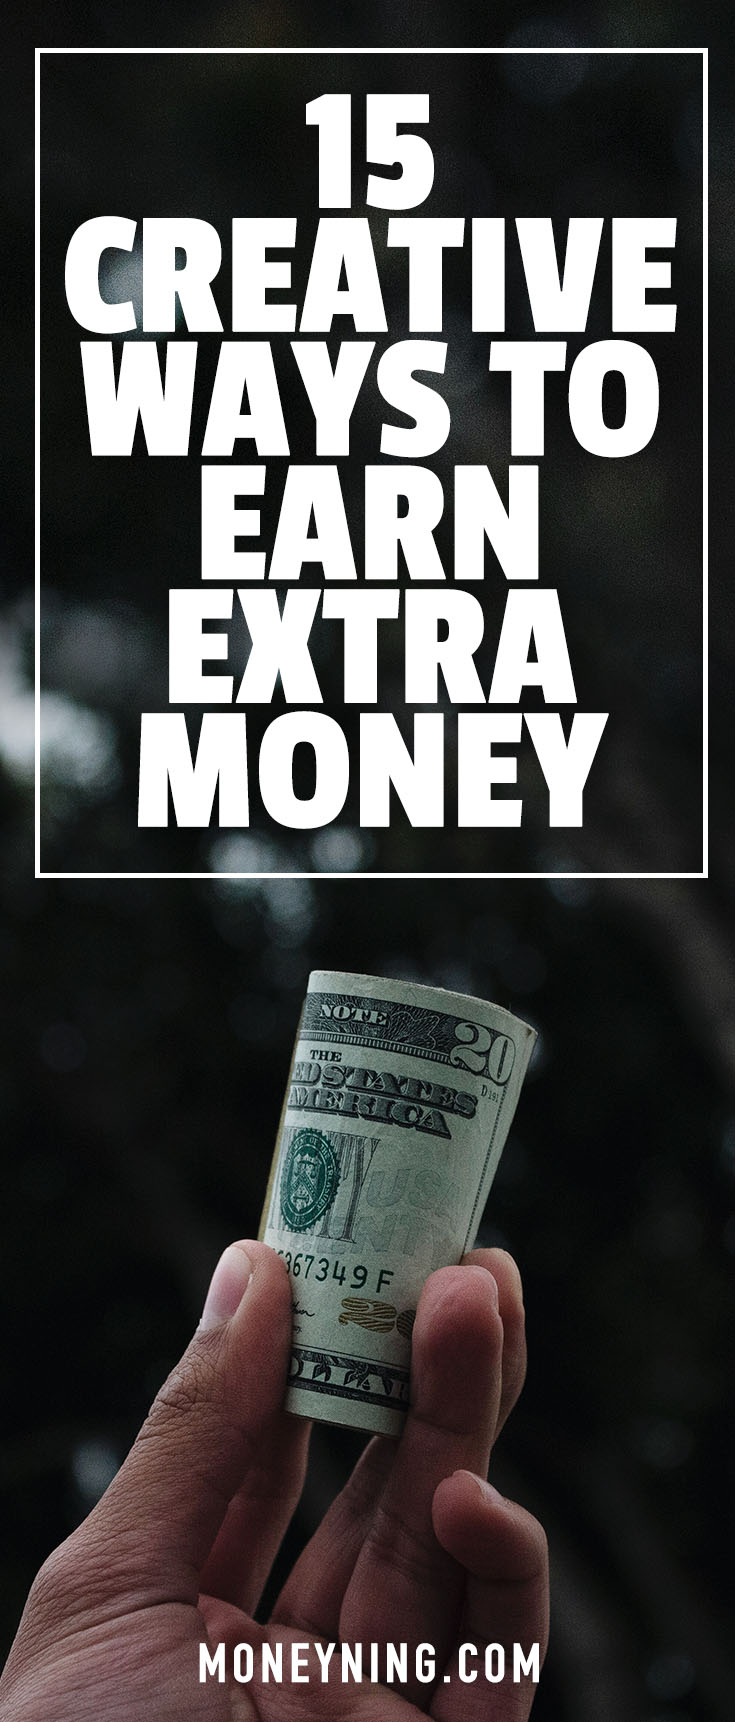 15 ways to earn extra money how to earn extra money fandeluxe Gallery